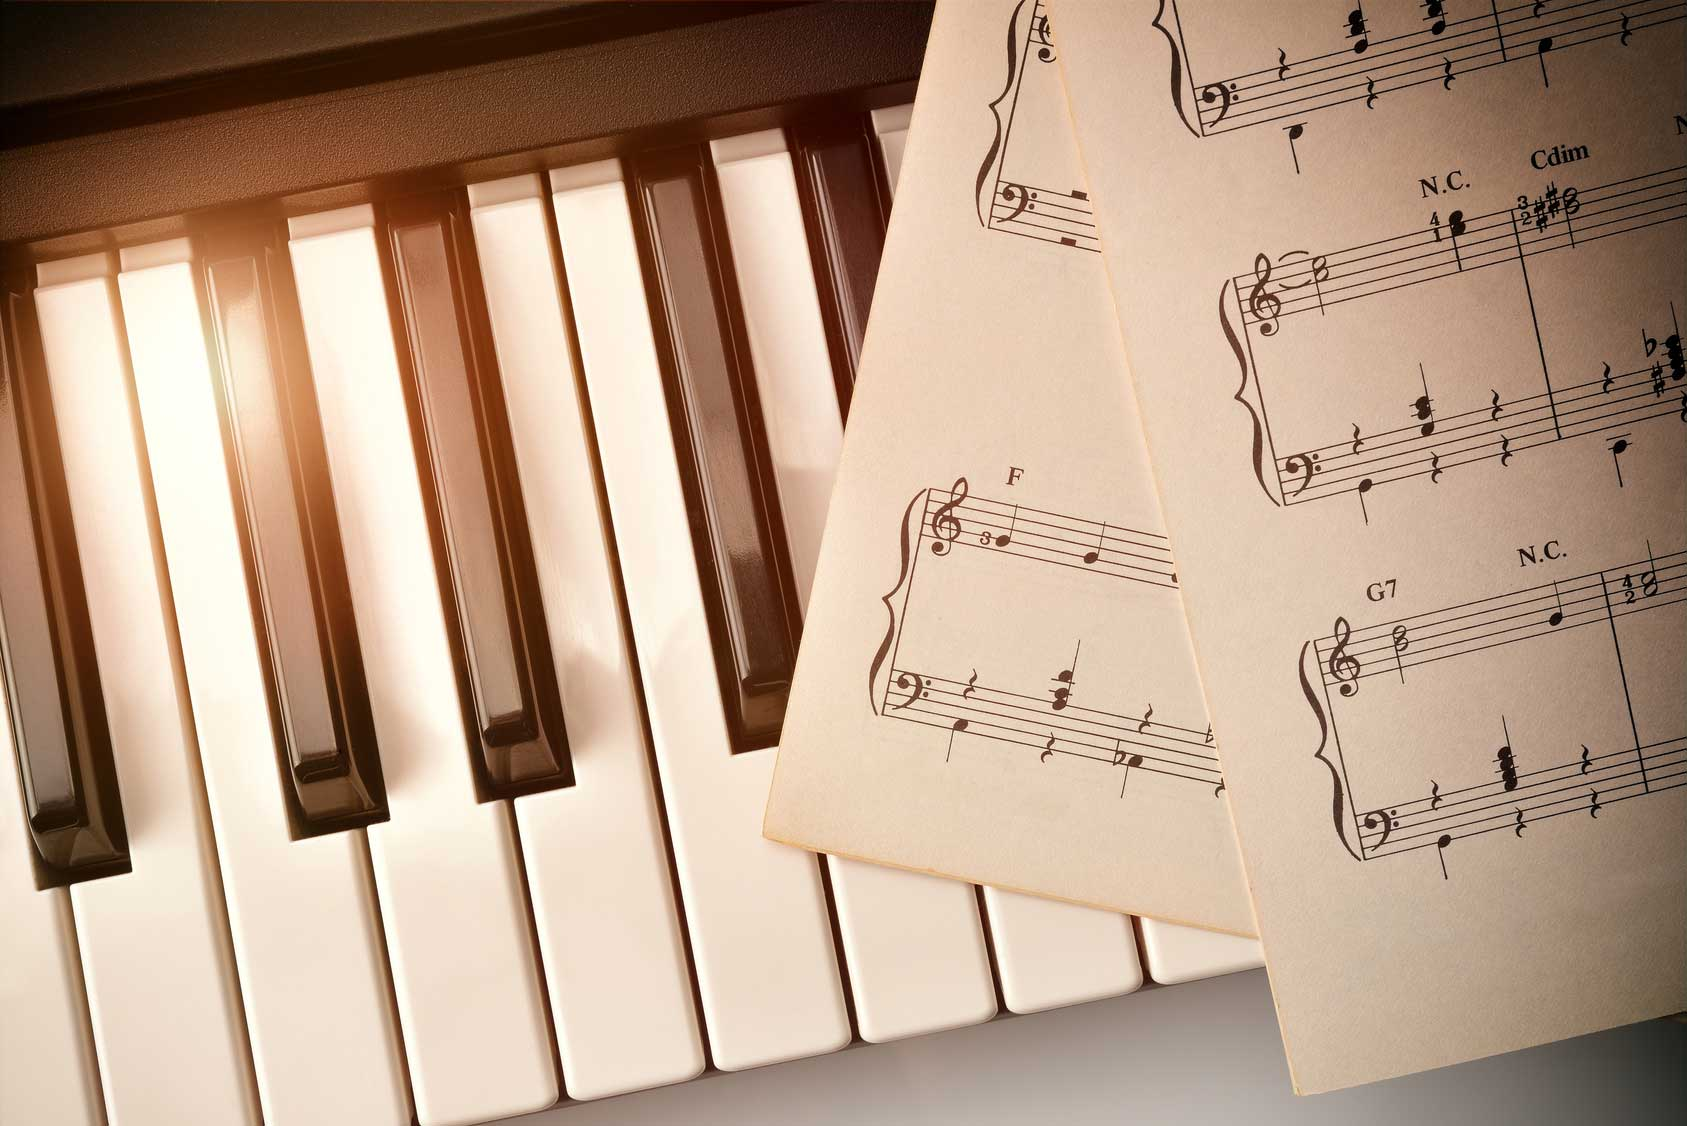 Easy Piano Sheet Music For Beginners The One Smart Piano